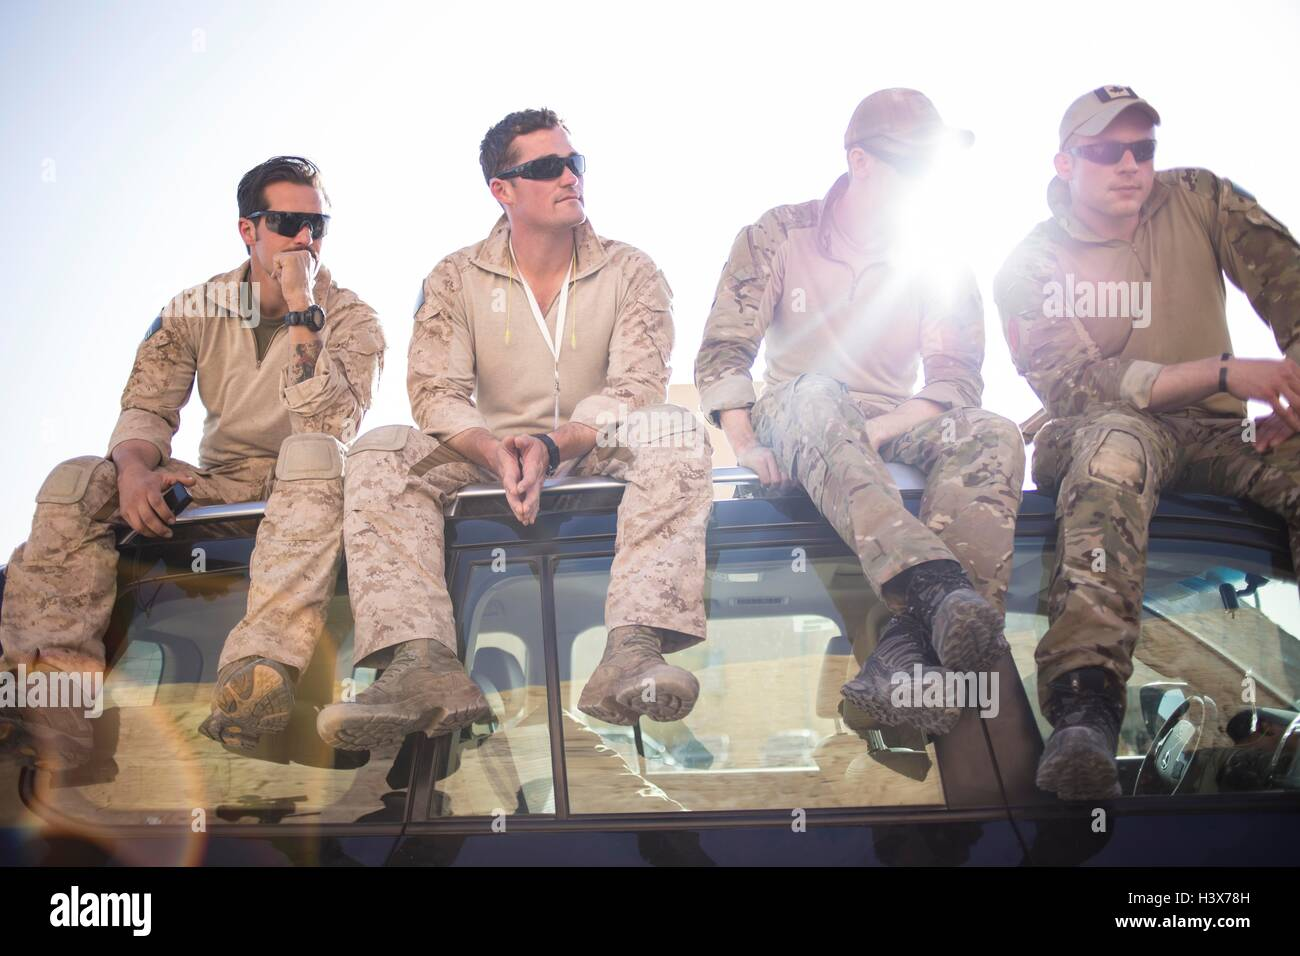 Amman, Amman, Jordan. 19th Apr, 2015. Members of the American and Canadian teams watch the remaining teams compete Stock Photo